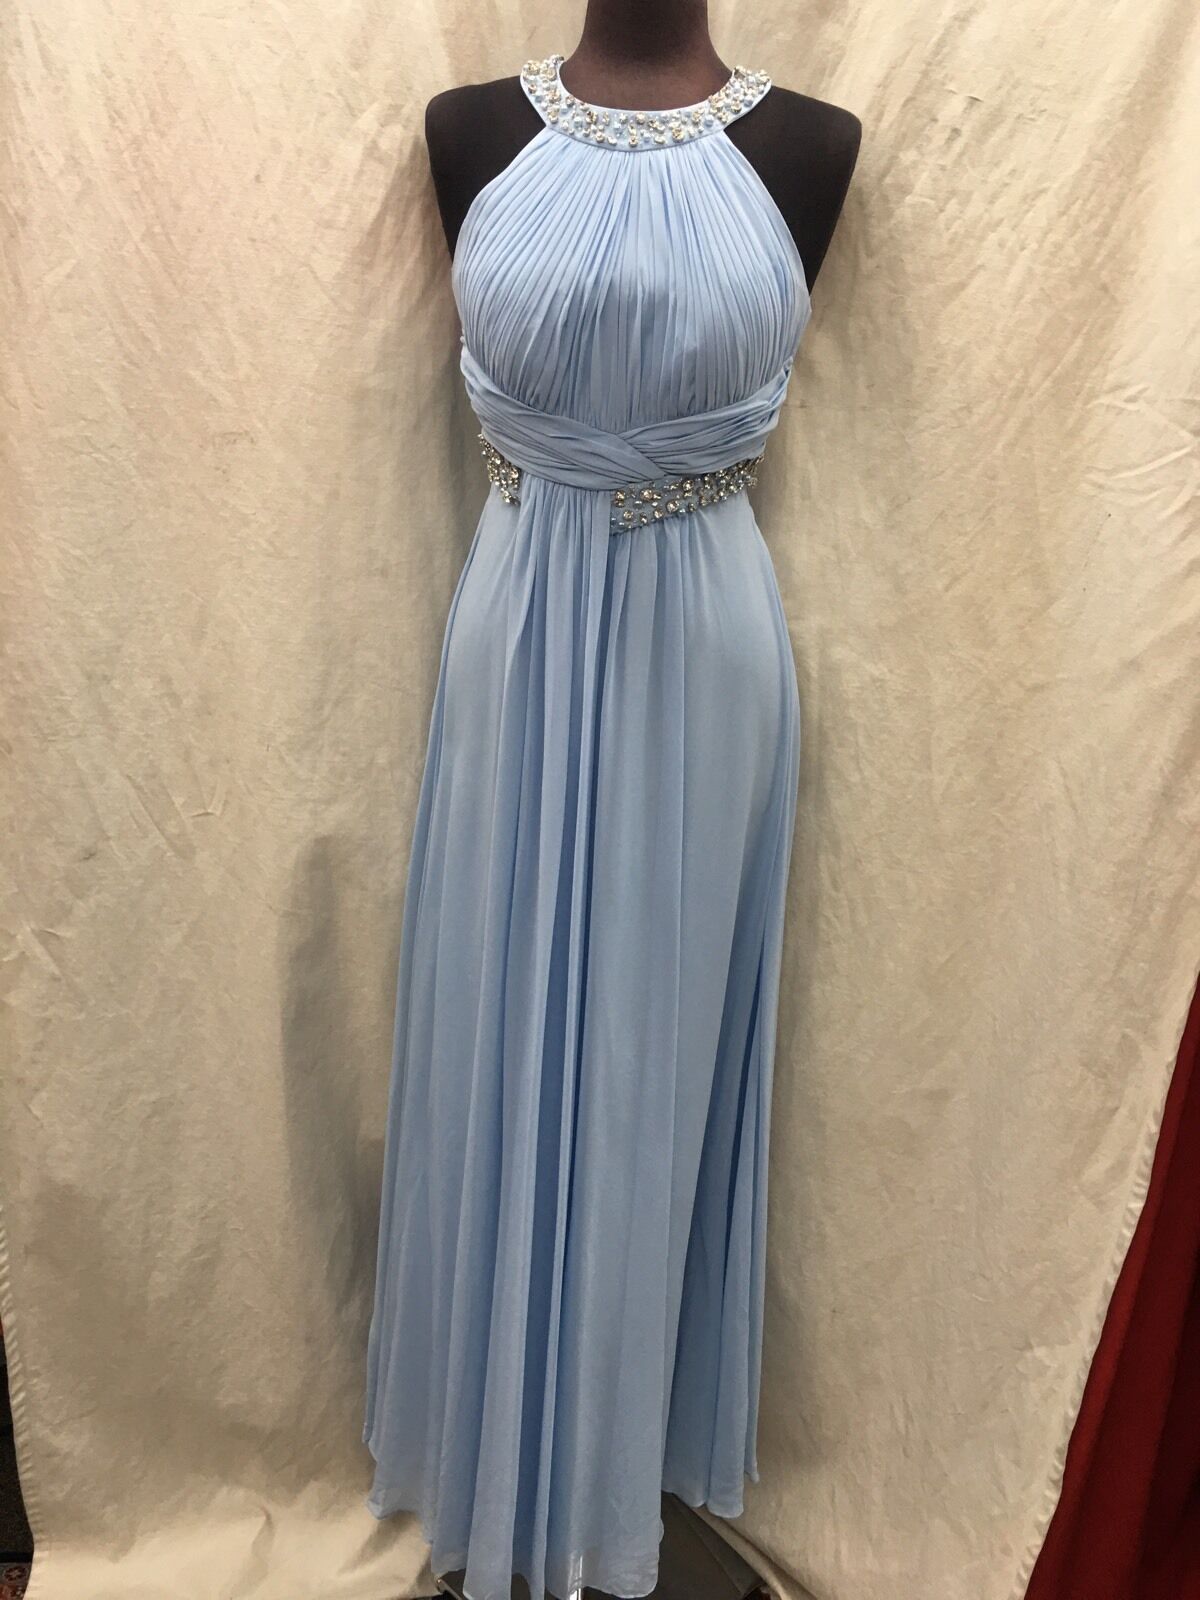 ELIZA J LONG GOWN SIZE 10 LIGHT blueE NEW WITH TAG RETAIL LENGTH 60